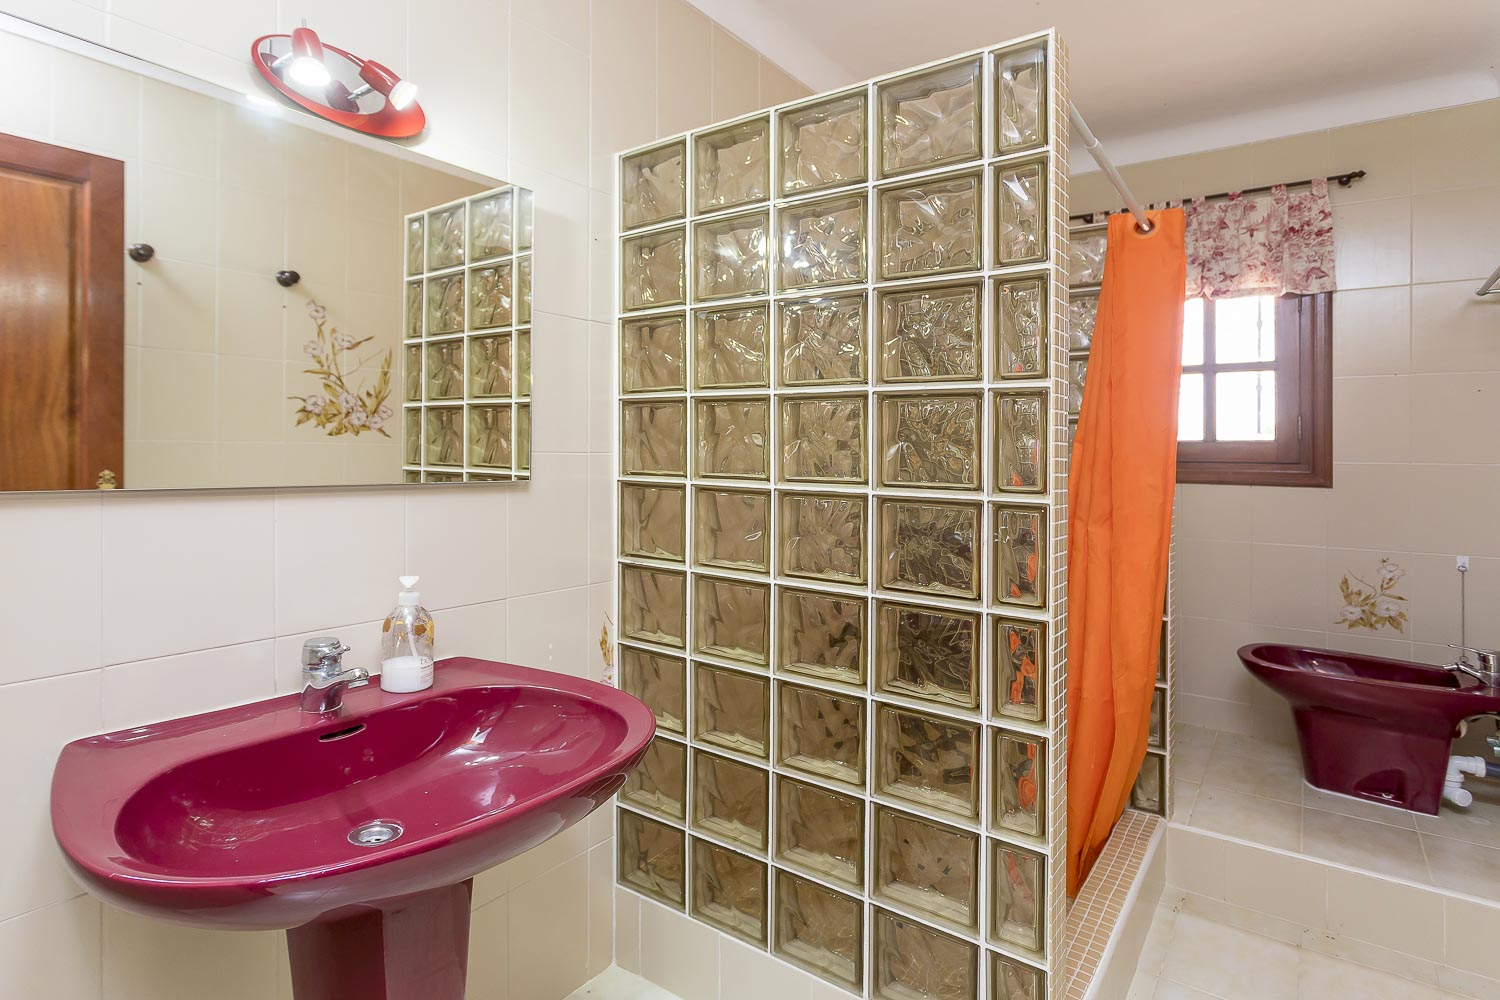 Private bathroom with a shower in a rental house in Ibiza